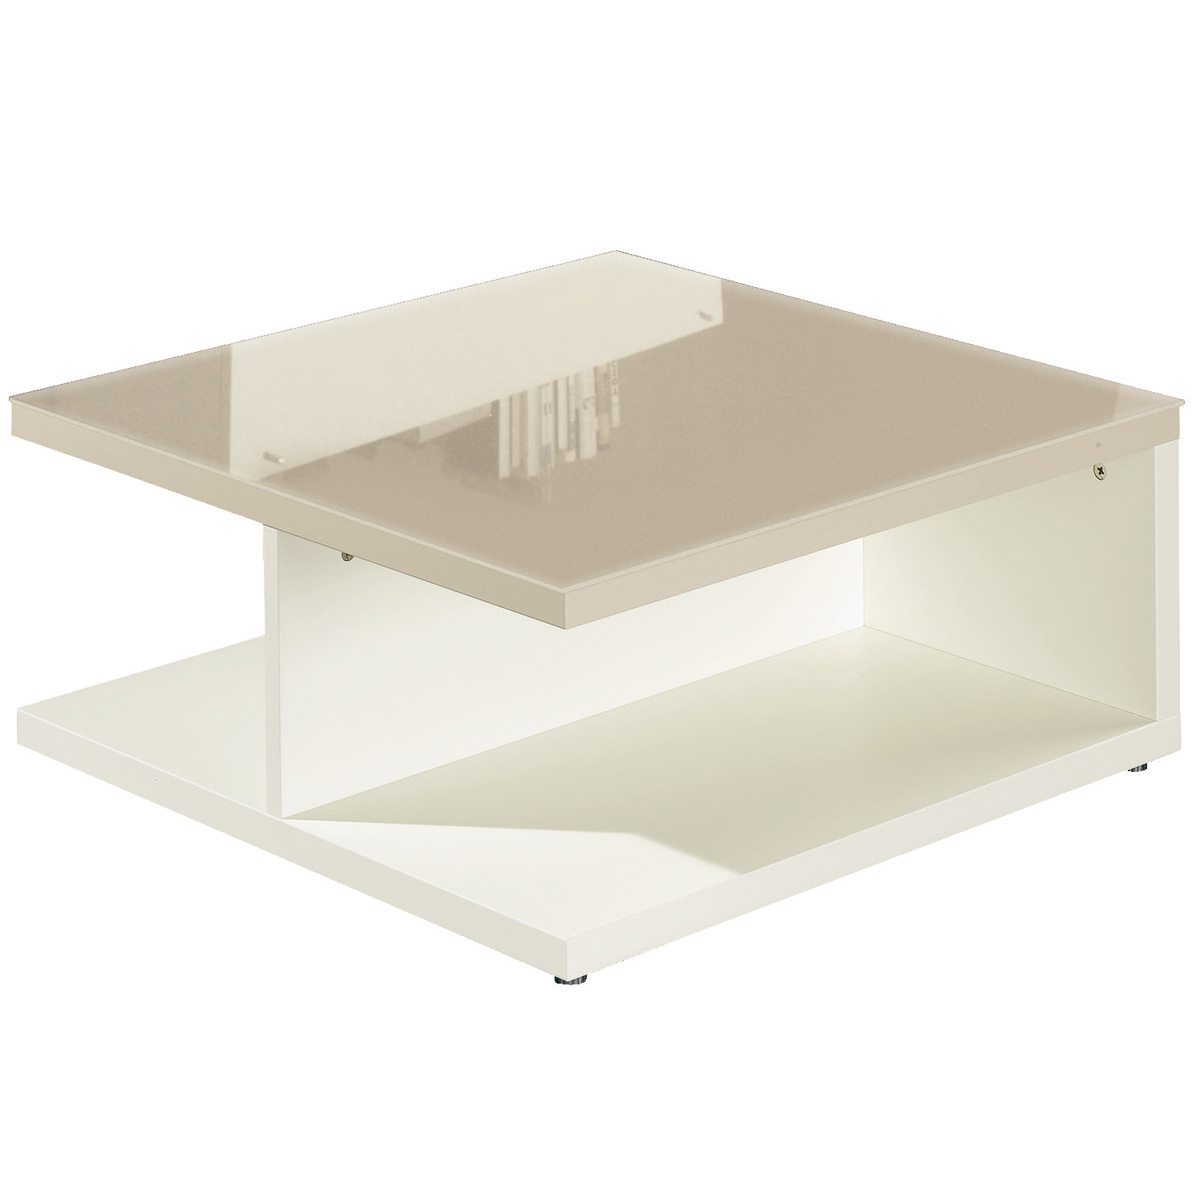 Ikea Online Esstische Glasplatte 24 Great Serve Cm Glasplatte Mit Rand Und